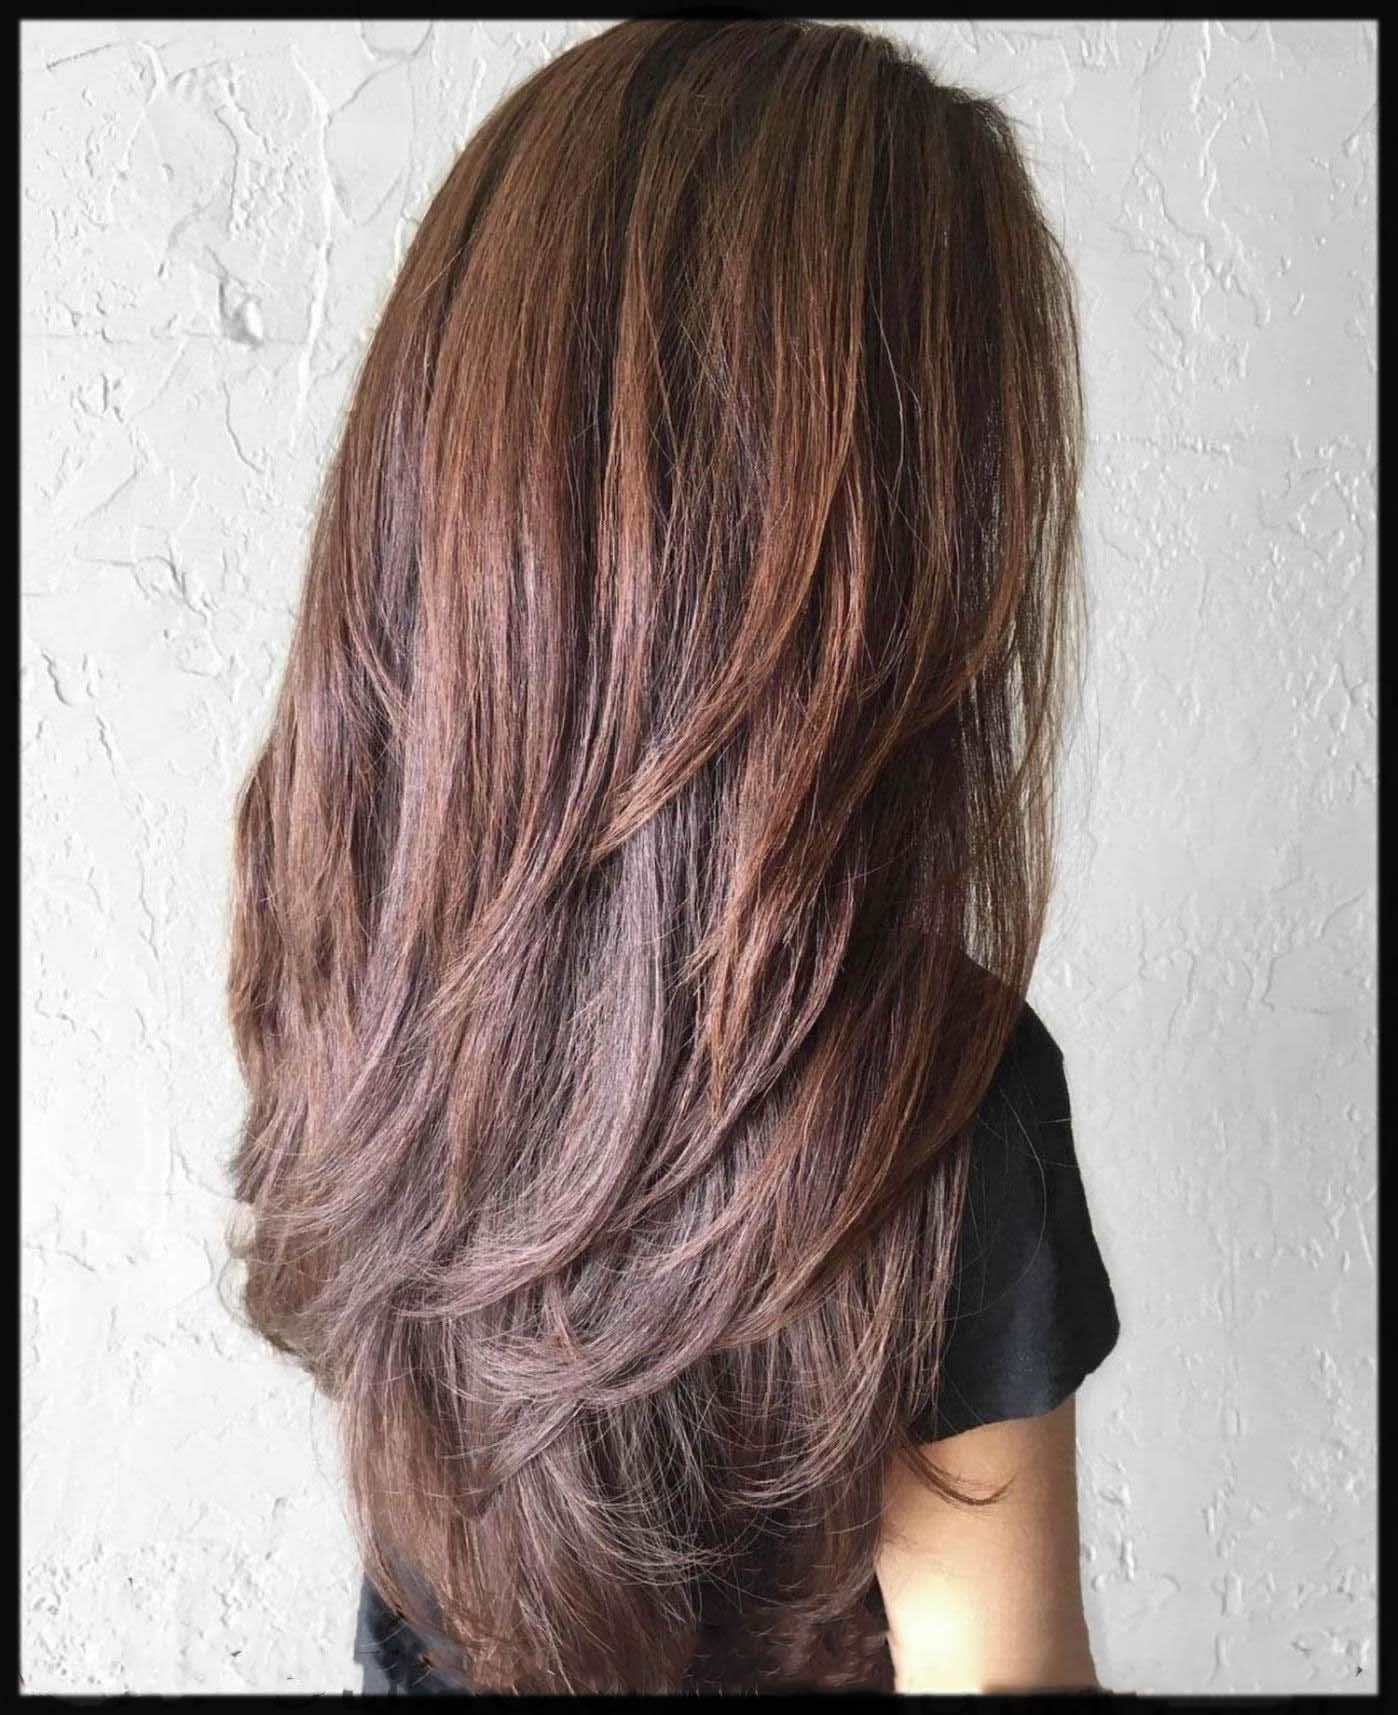 25 Most Popular Asian Hairstyles For Women With All Hair Lengths 2021